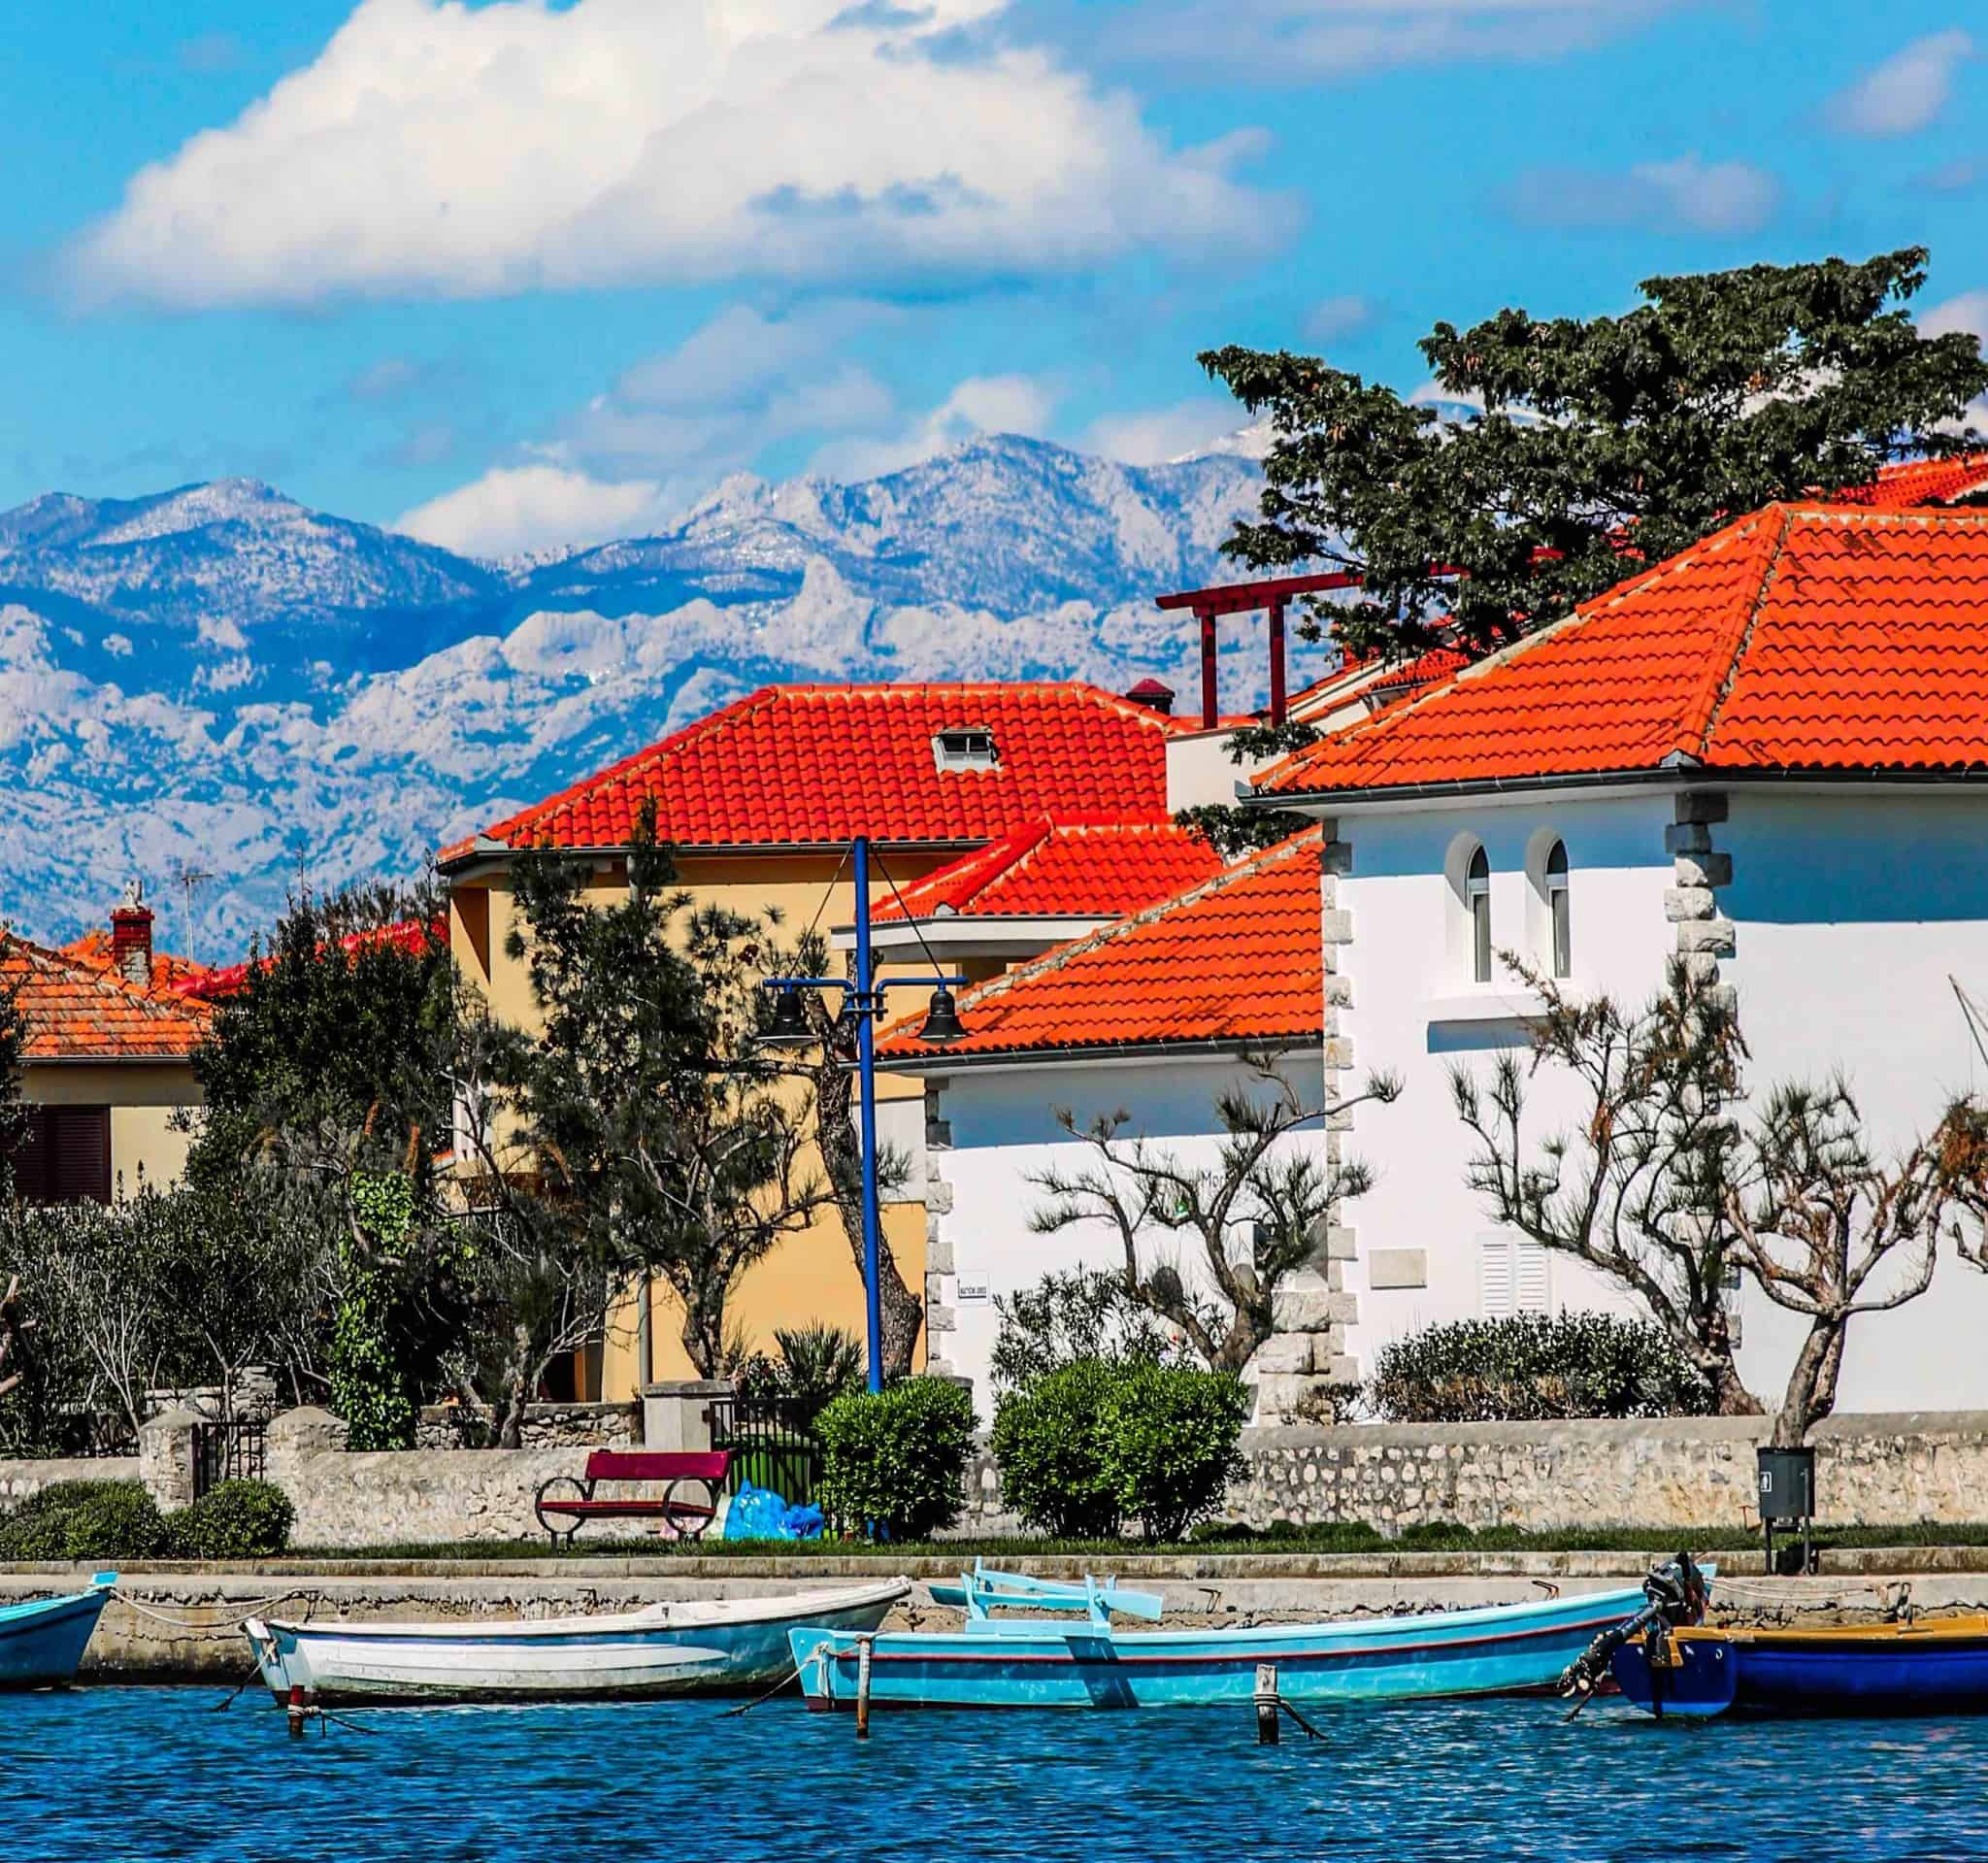 The Town of Nin is a great place to visit when you're wondering where to go in Croatia